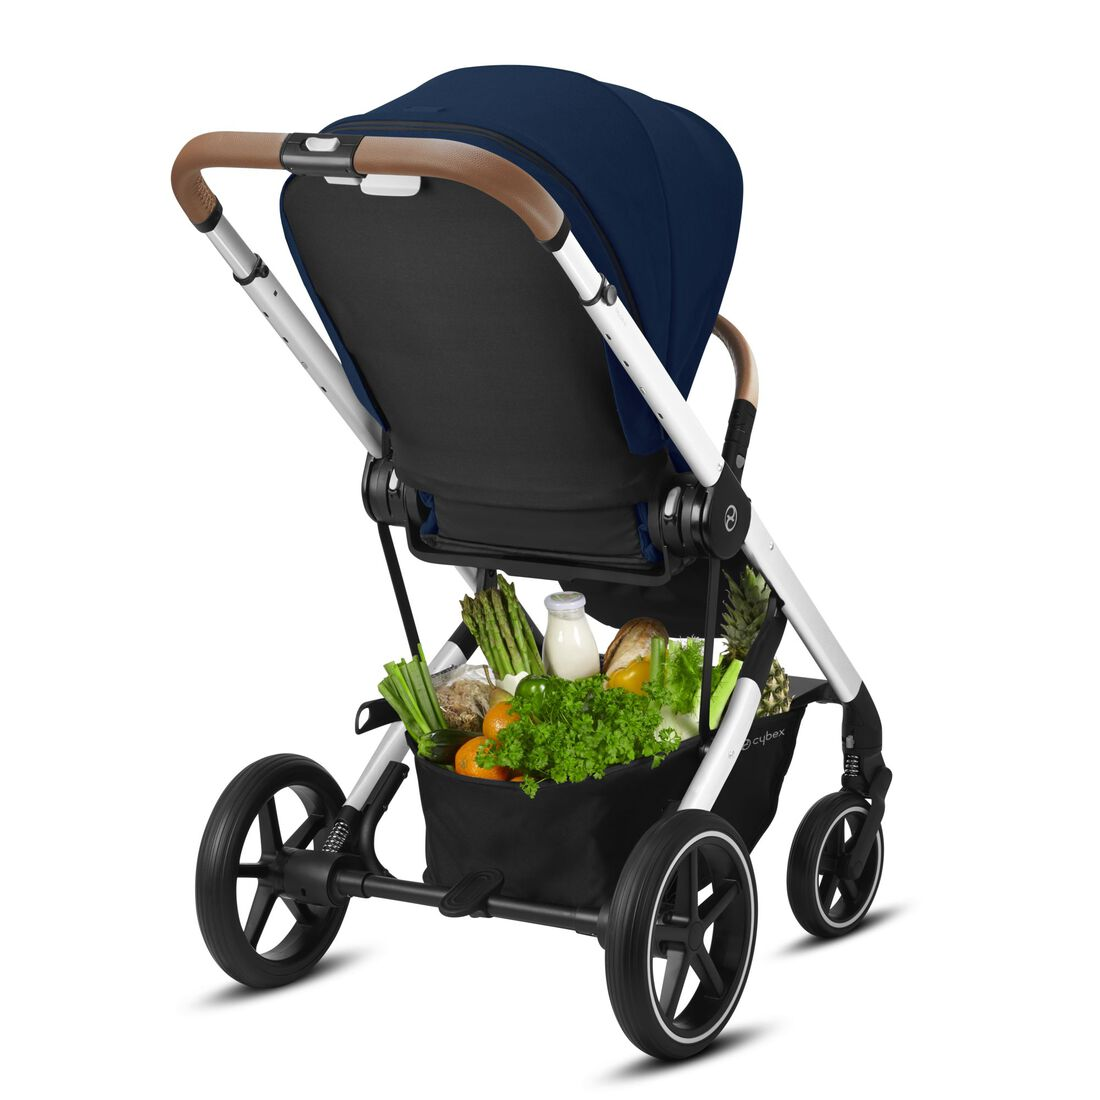 CYBEX Balios S Lux - Navy Blue (Silver Frame) in Navy Blue (Silver Frame) large image number 6